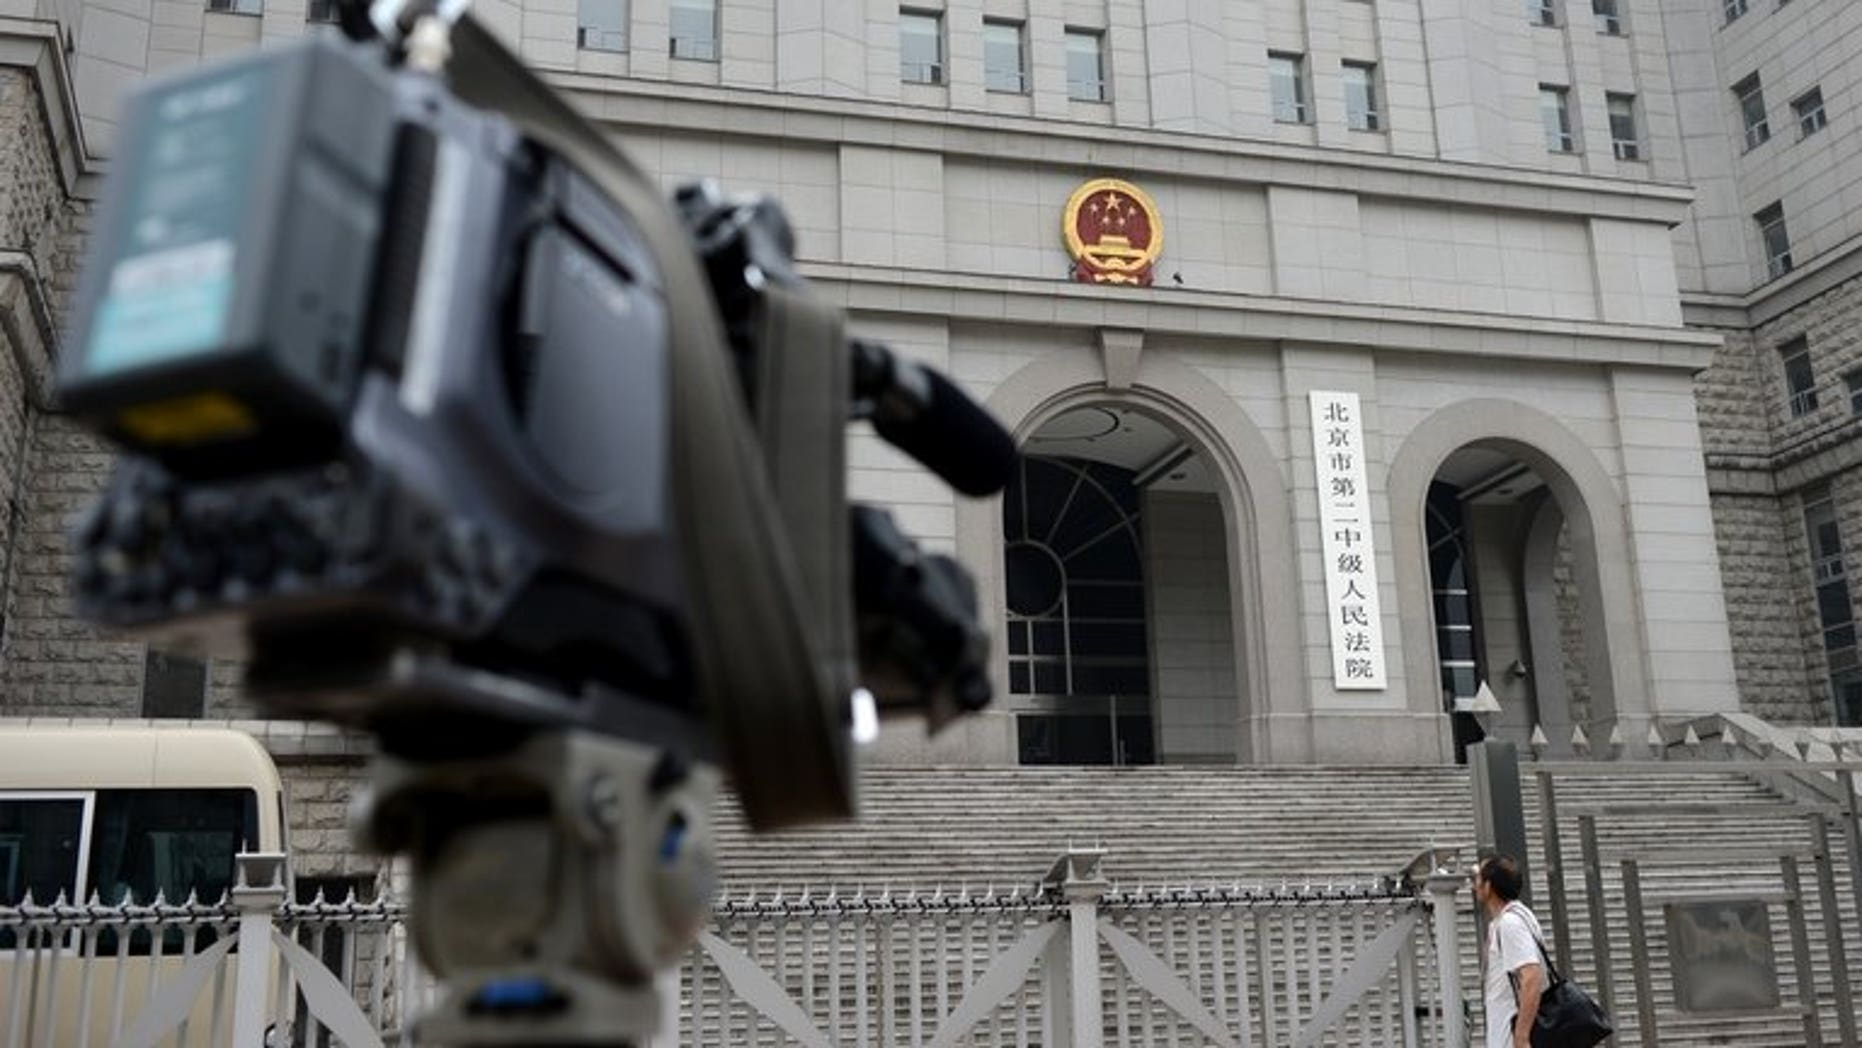 A courthouse in China's capital Beijing on July 8, 2013. The son of a Chinese general has been charged with rape, state media said, in a case that has sparked public anger over the seemingly privileged lives of elite youths.